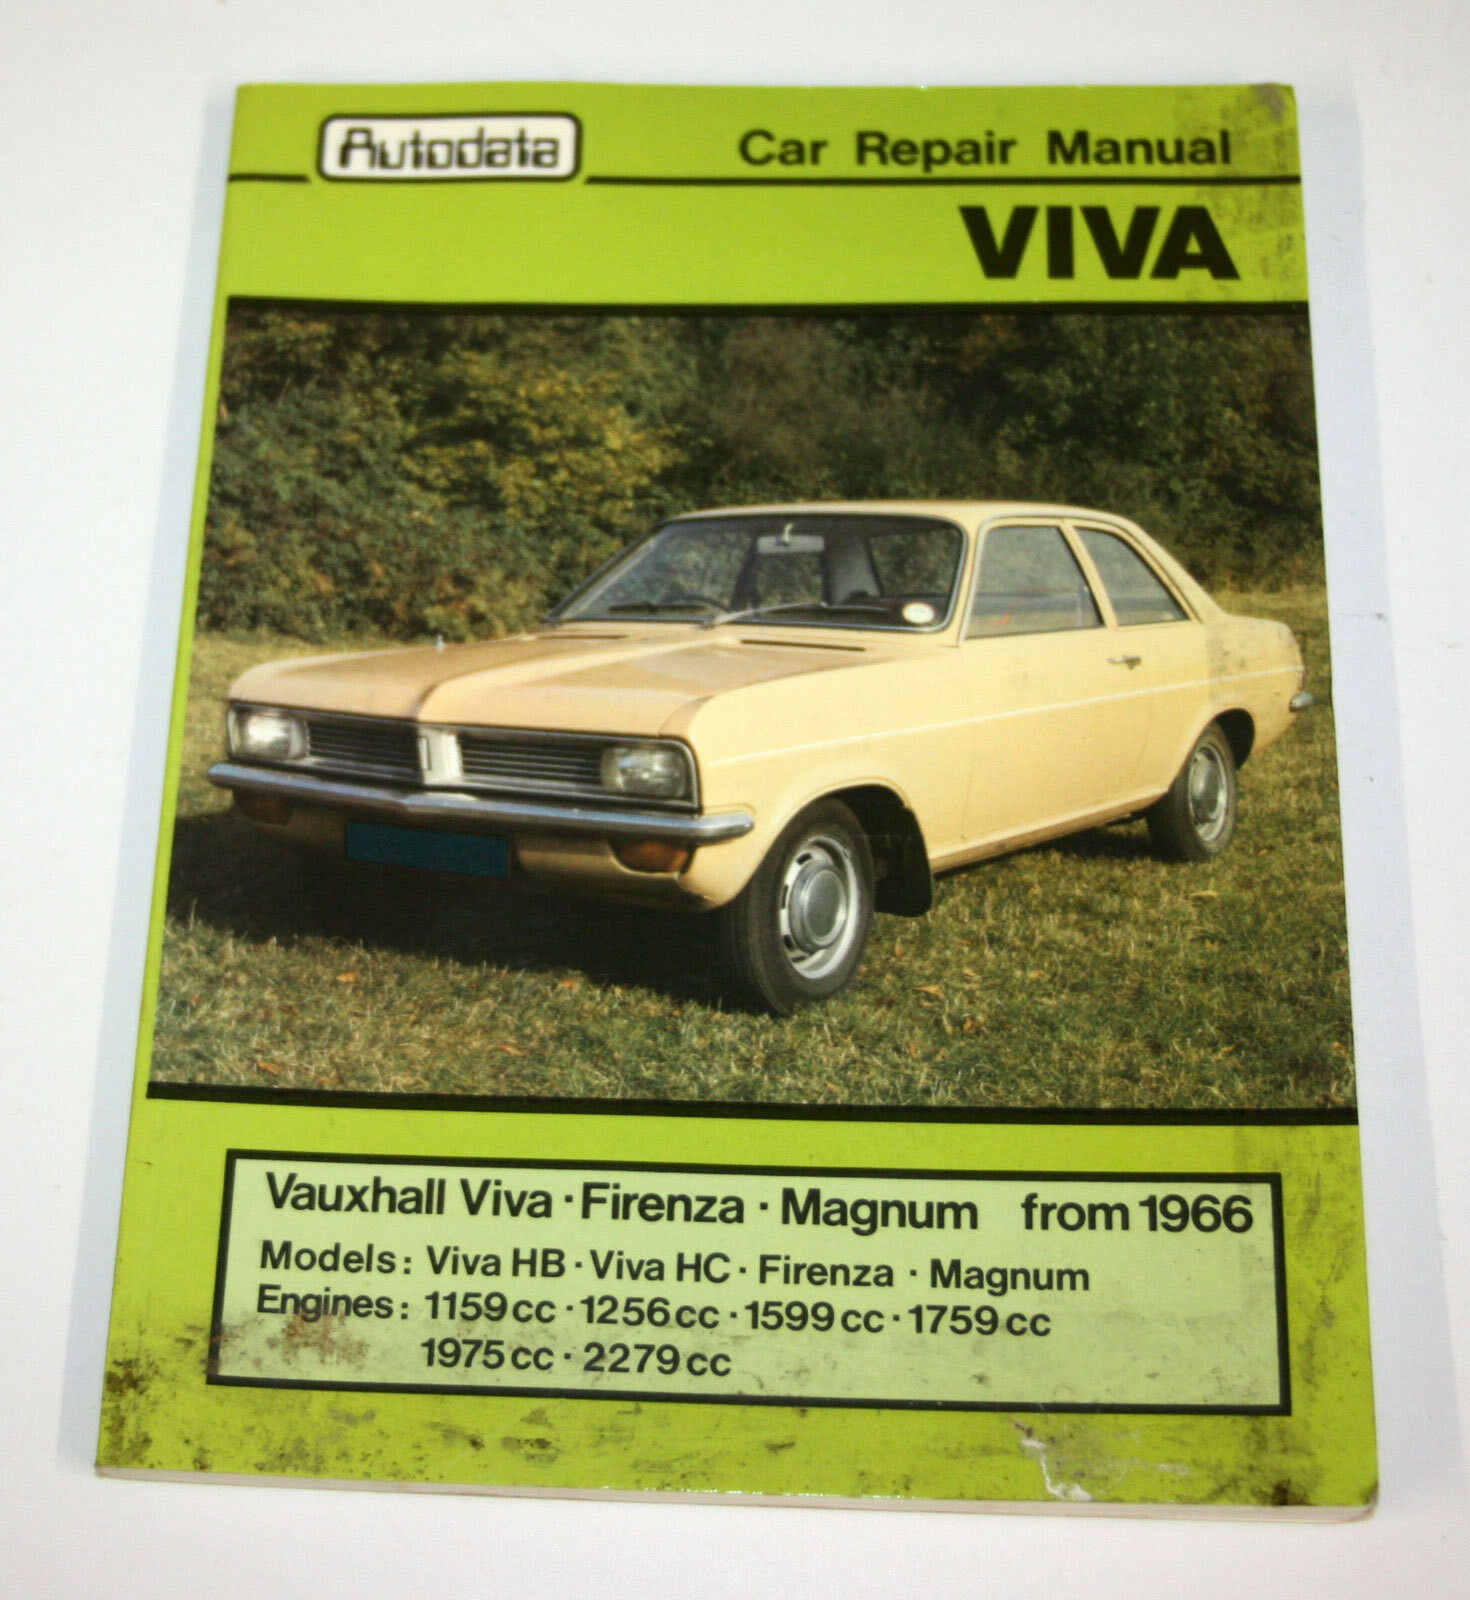 Autodata Workshop Manual 254 Vauxhall Viva Firenza Magnum From Wiring Diagram 1 Of 1only Available